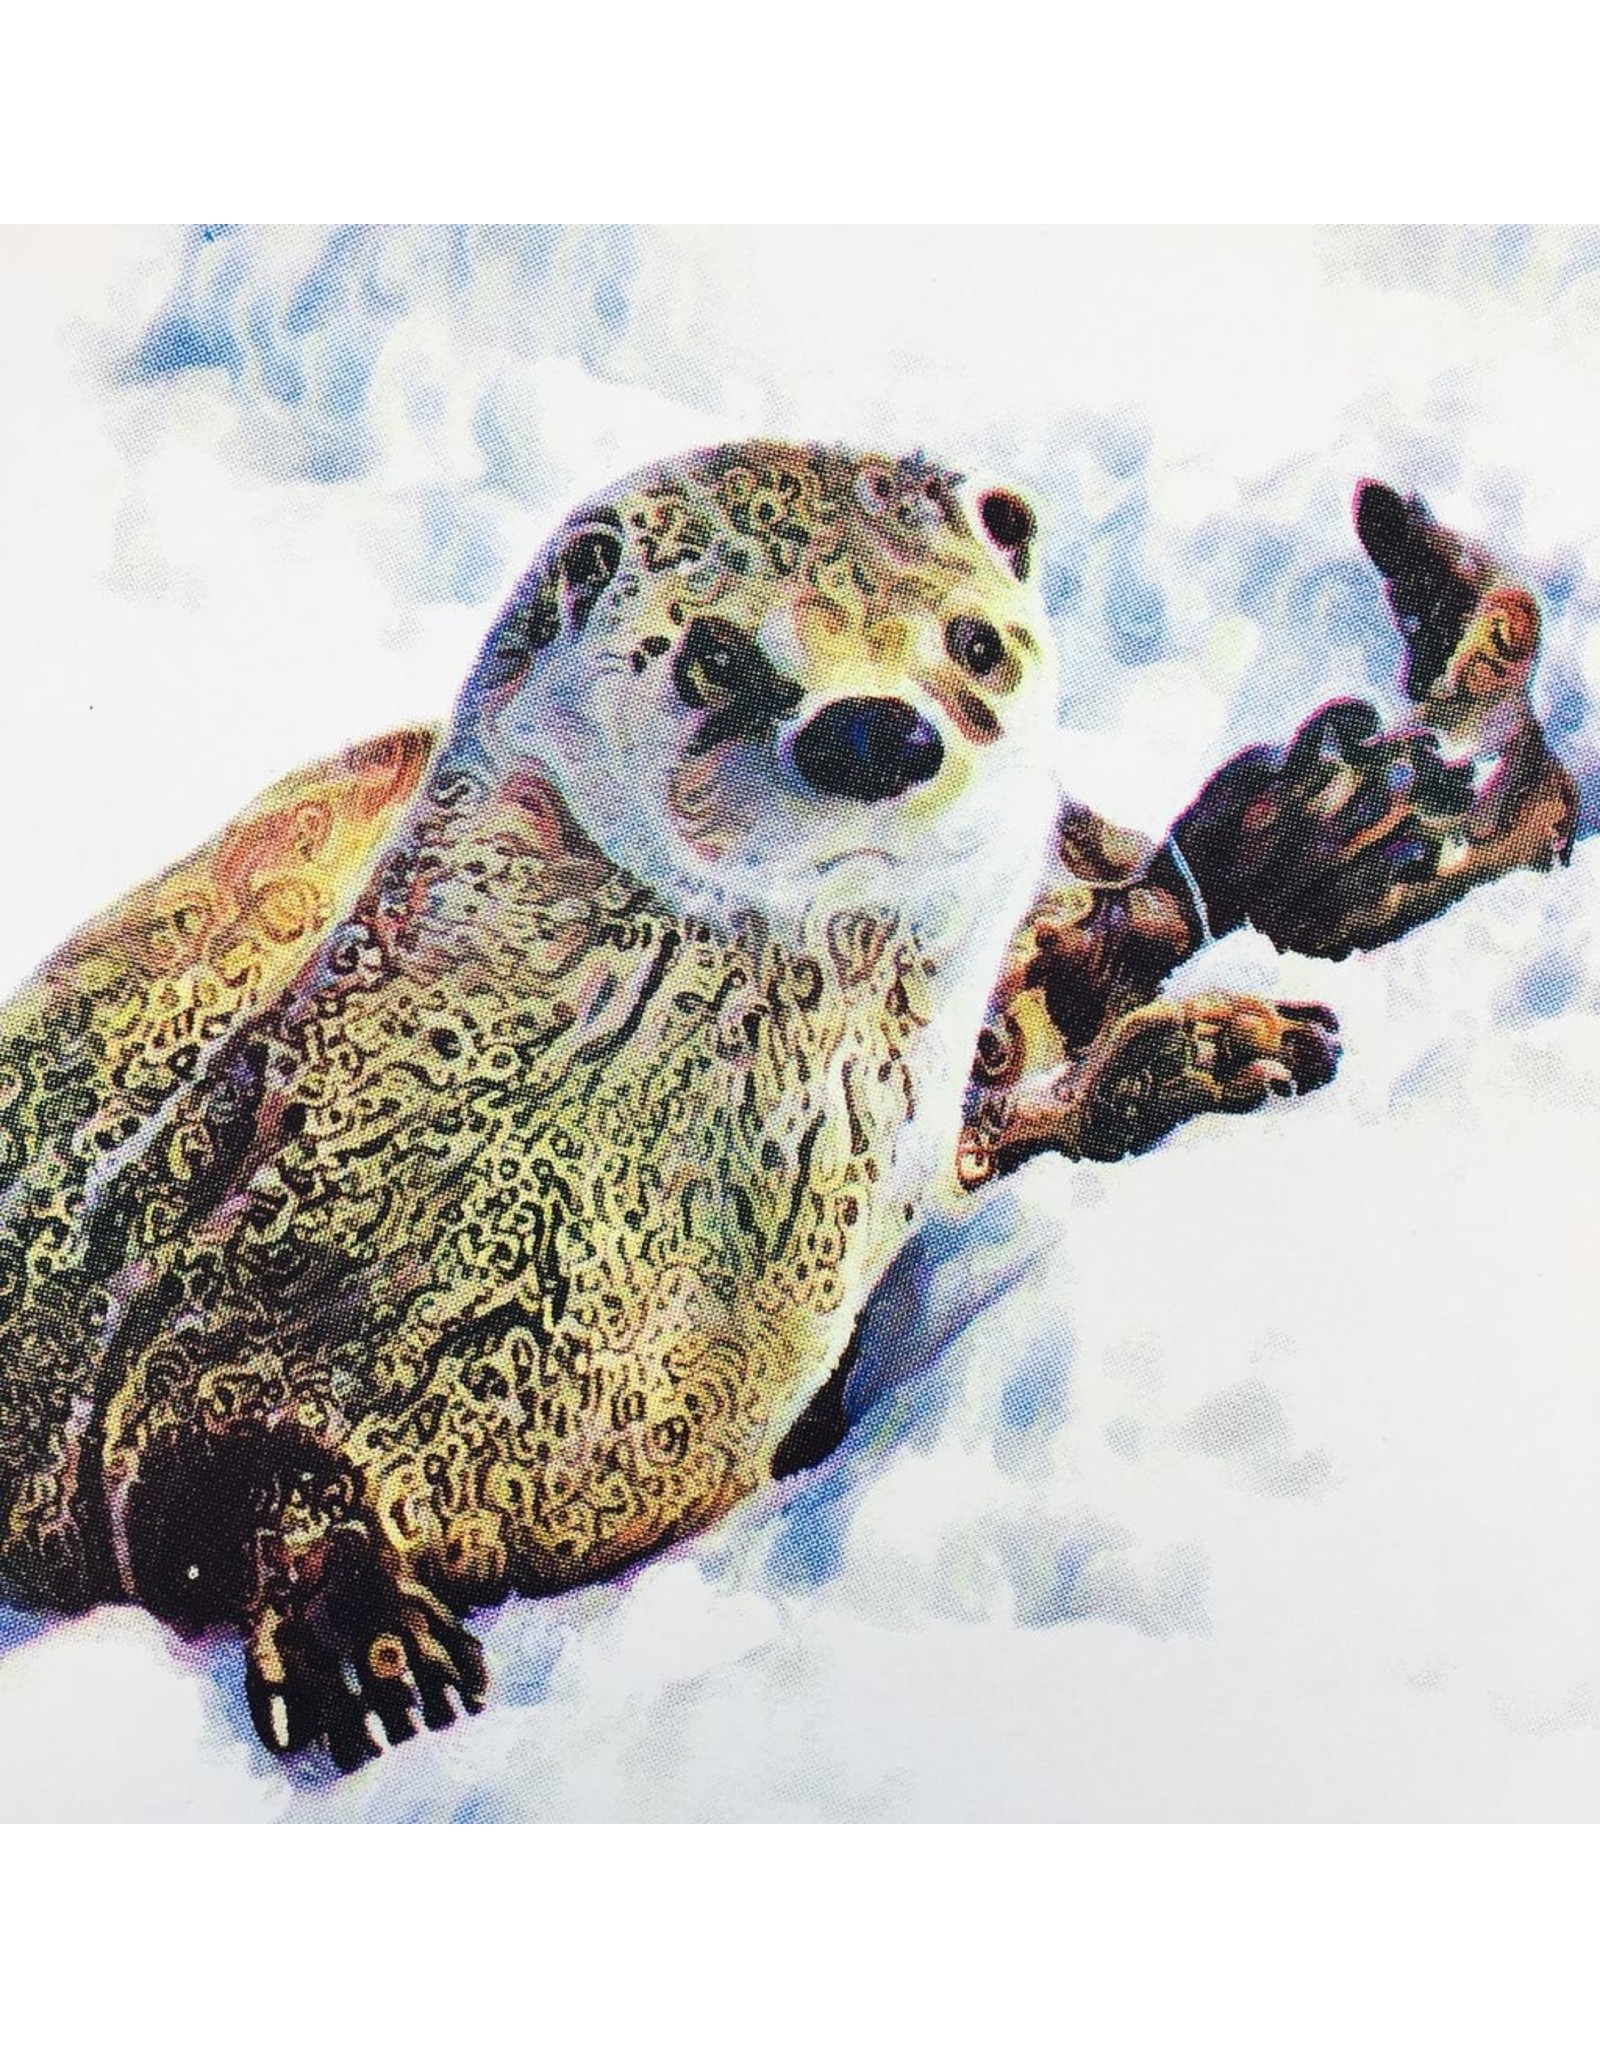 Graham, Peter River Otter (Candied Mammals of the Boreal Forest), Peter Graham